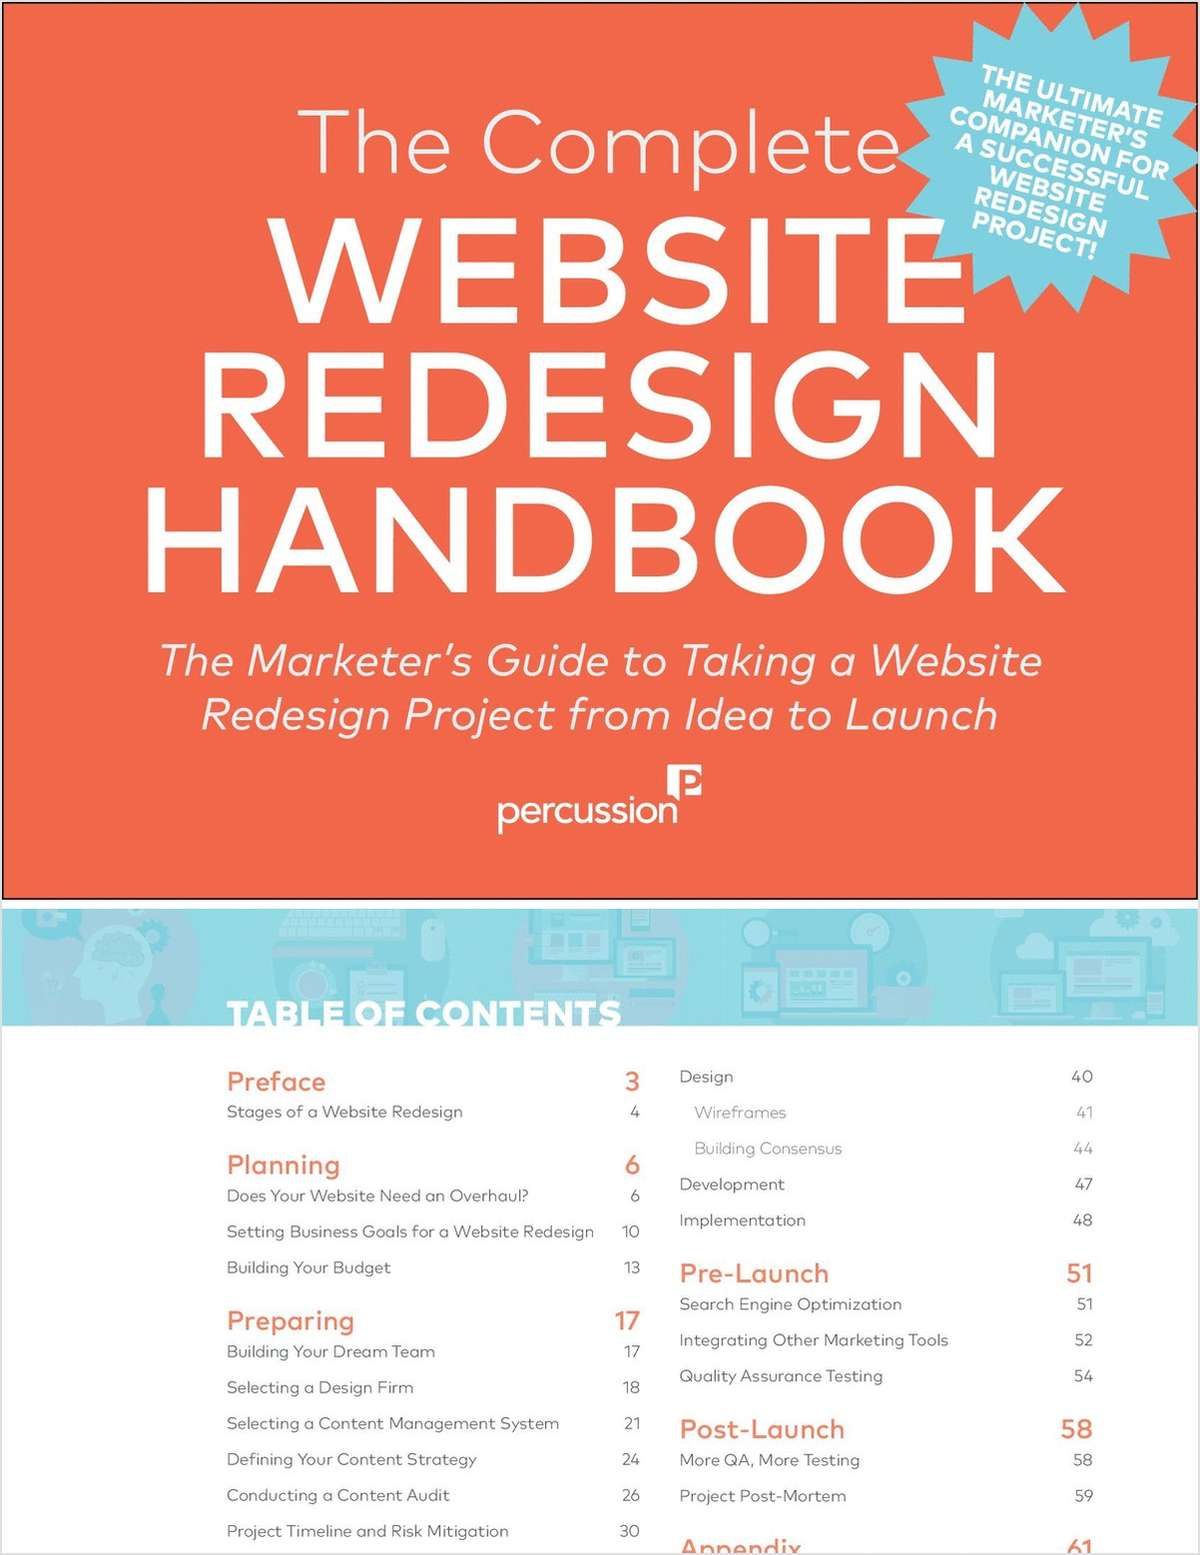 The Complete Website Redesign Handbook: 65-Page Guide to Taking a Successful Website Redesign Project from Idea to Launch